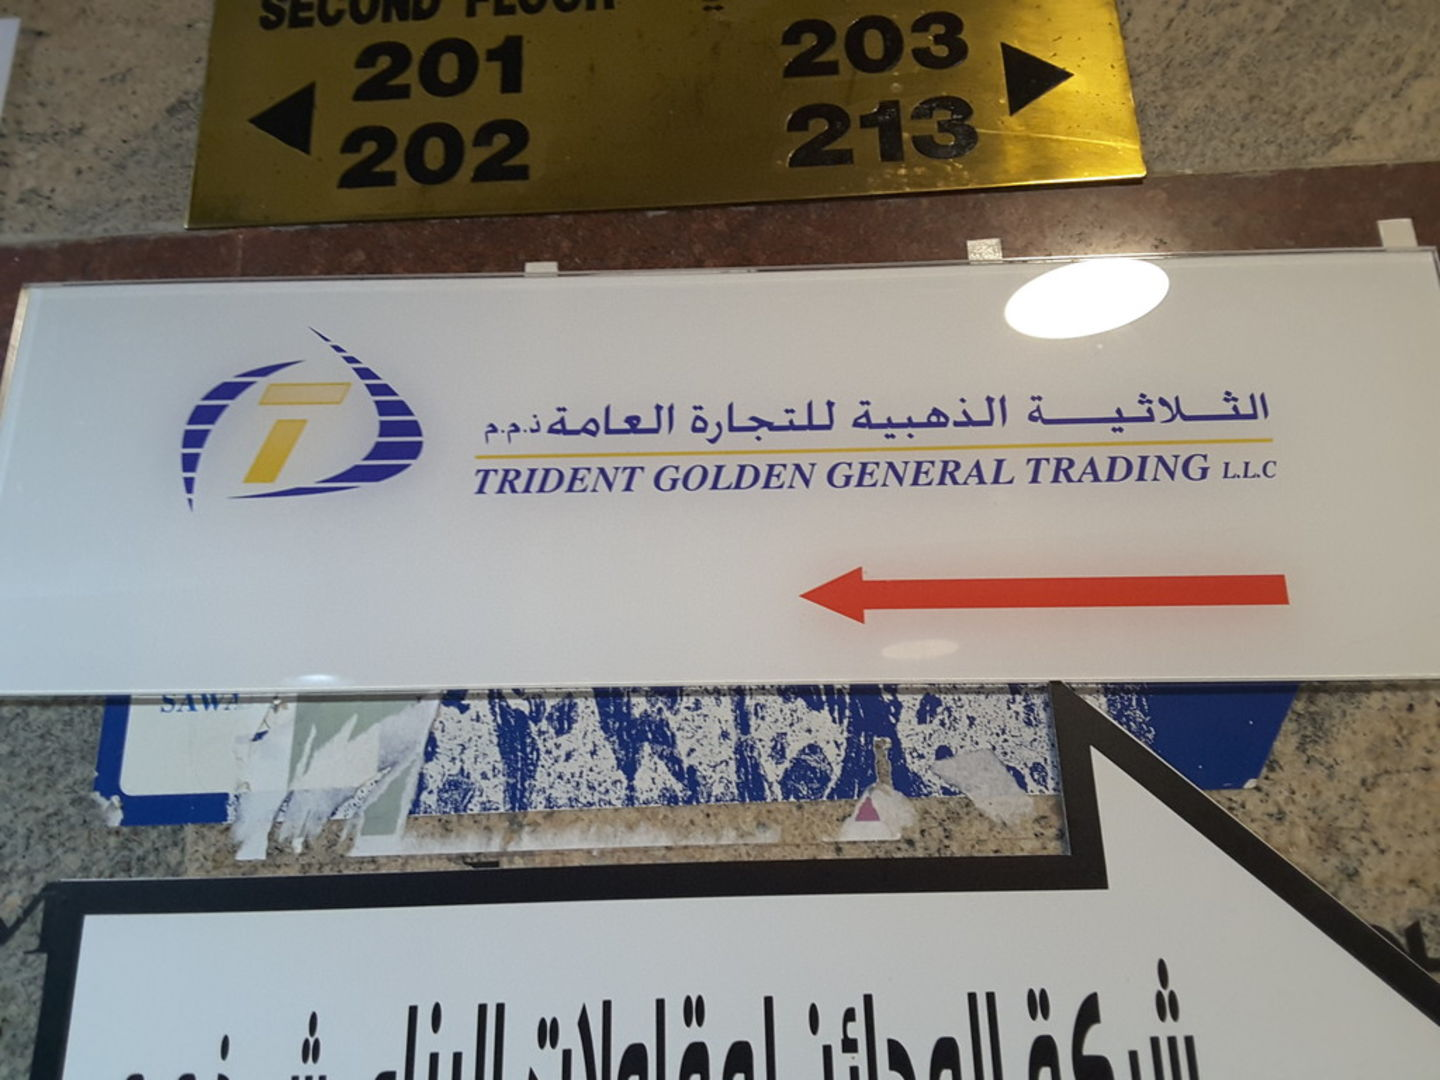 Walif-business-trident-golden-general-trading